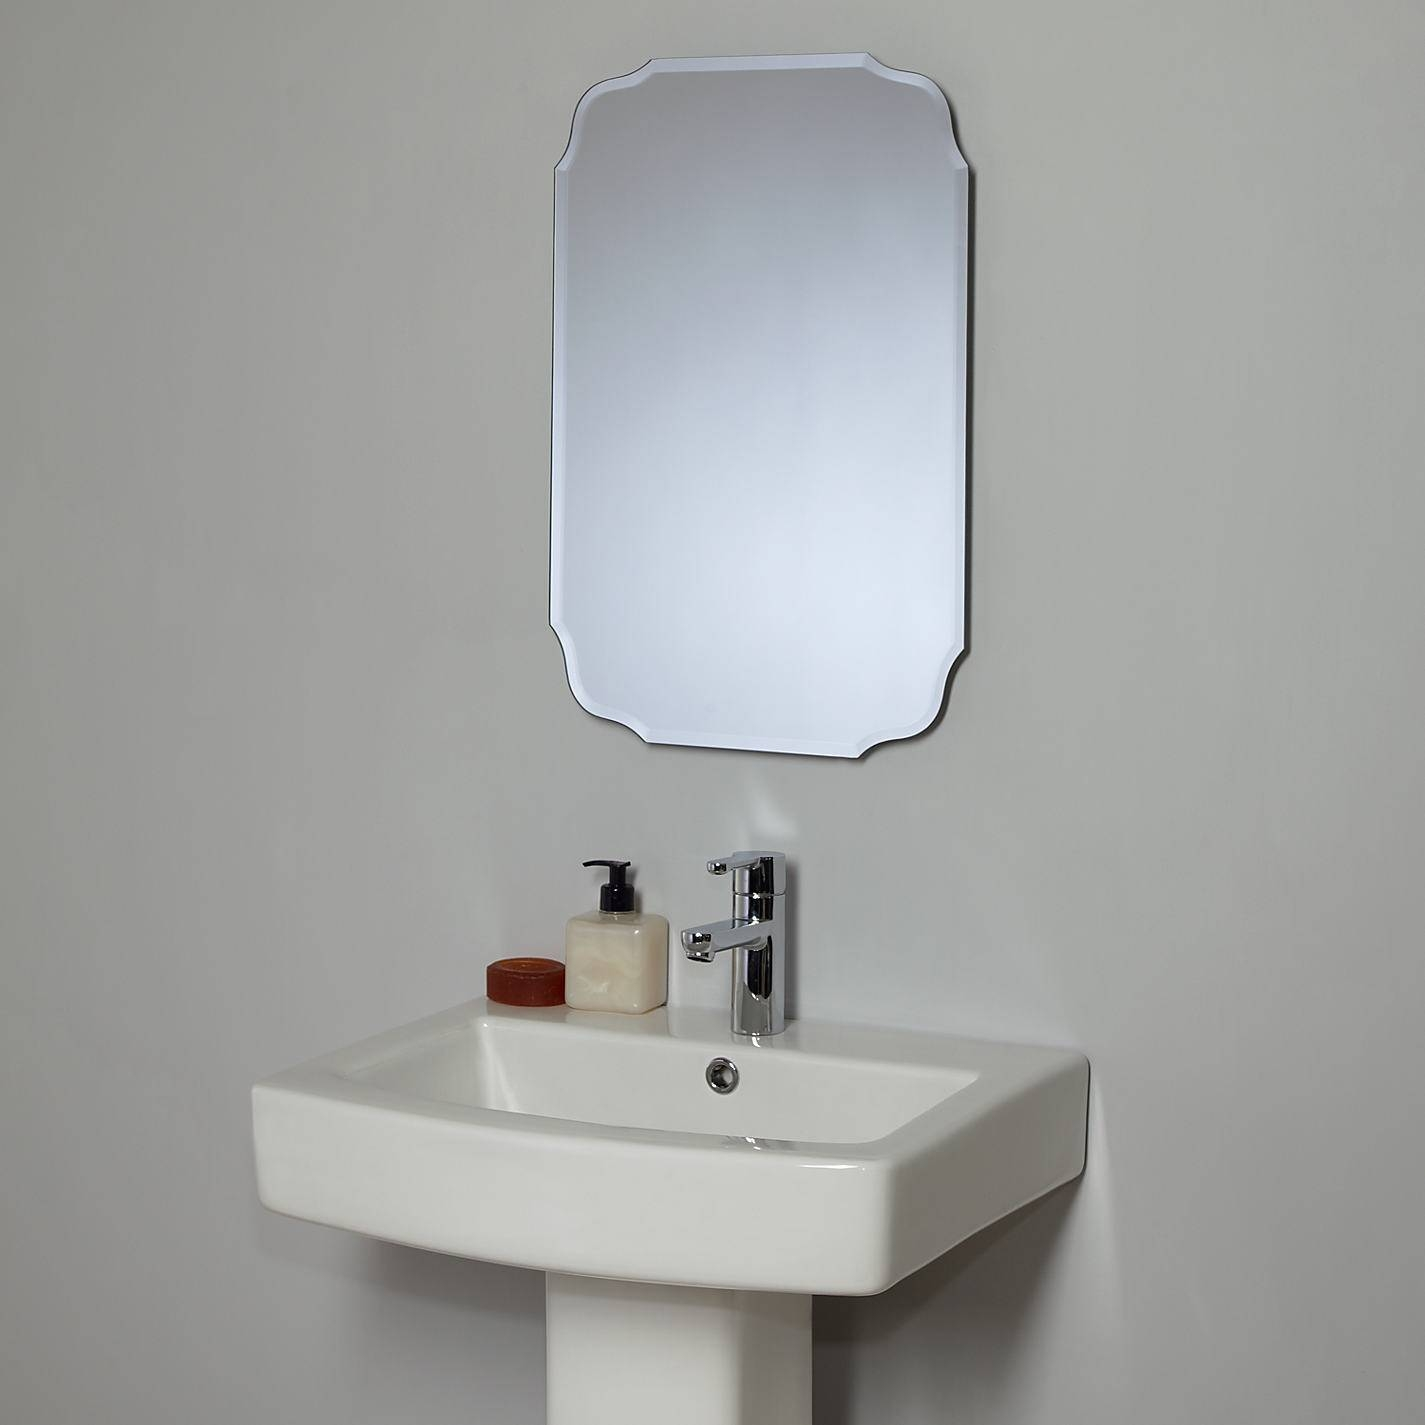 Vintage Bathroom Mirrors: Special Interior Needs Special Things with regard to Antique Bathroom Mirrors (Image 15 of 15)